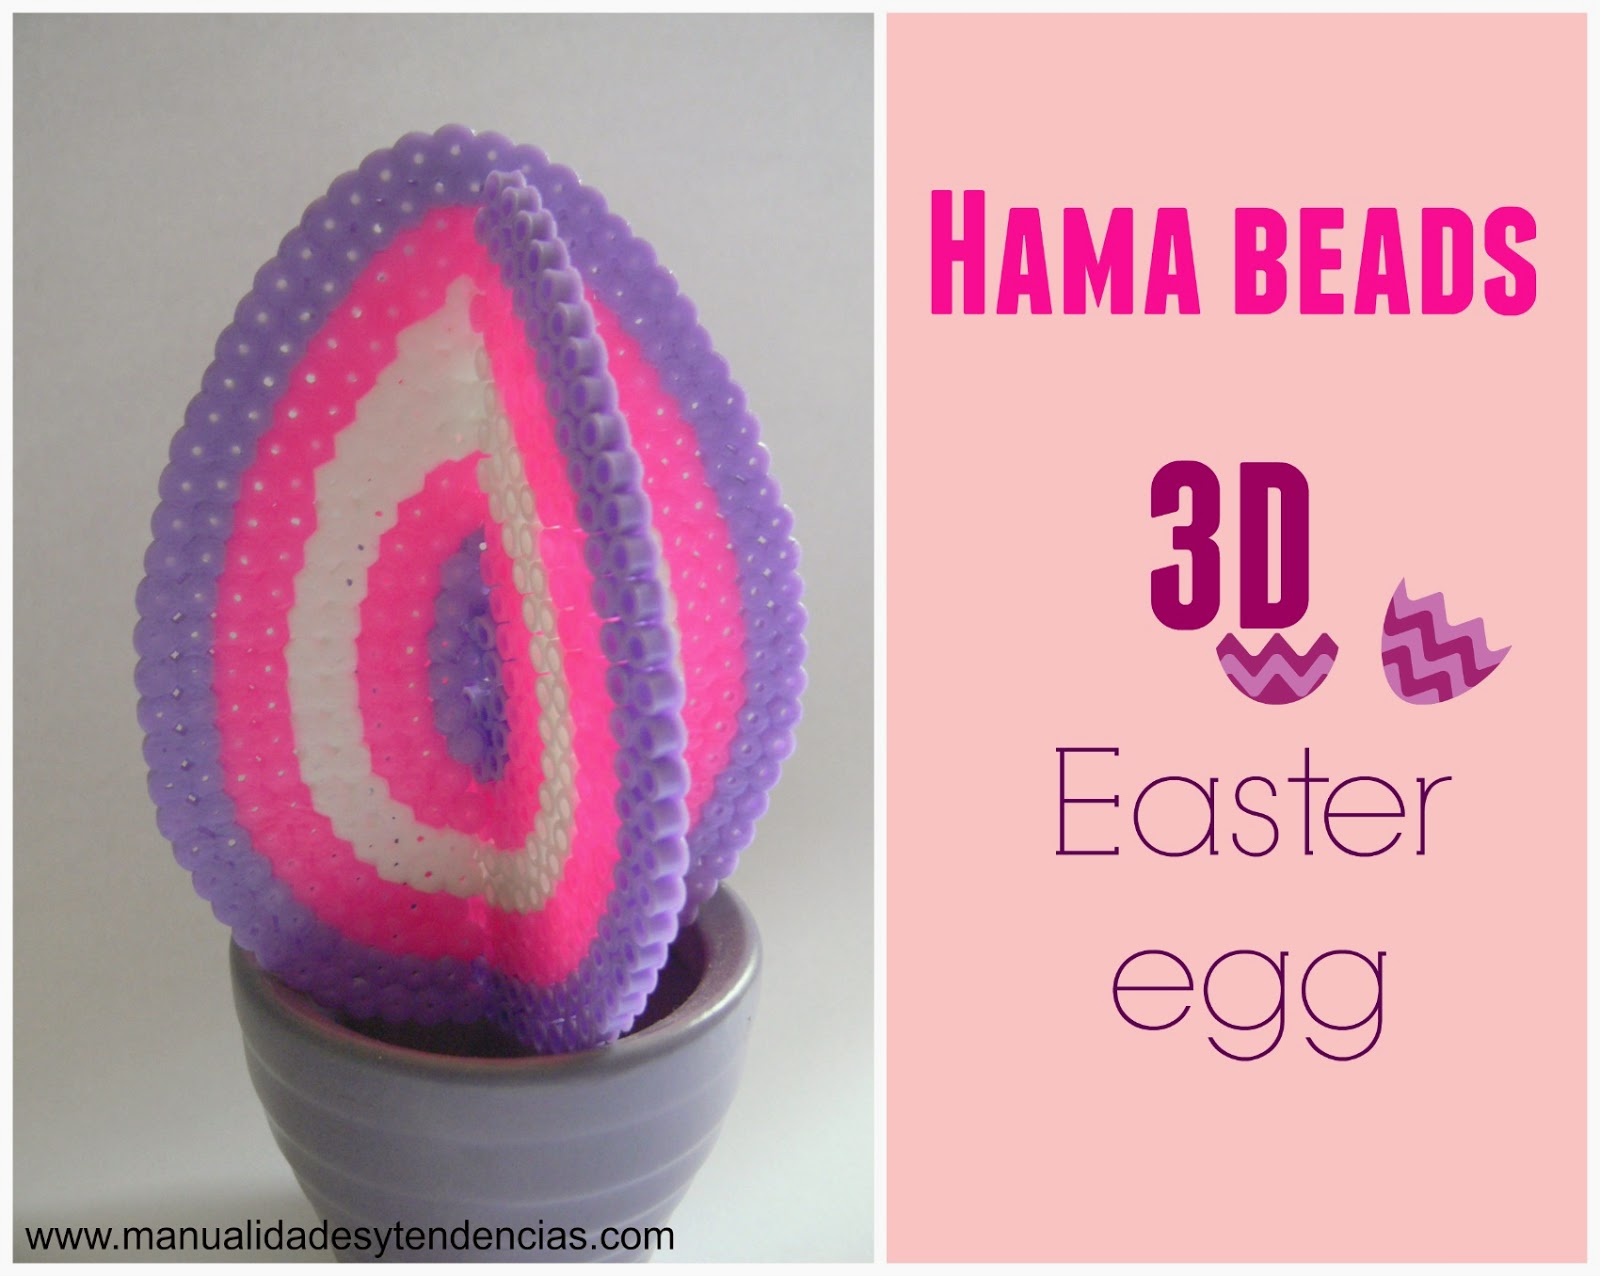 hama beads easter egg